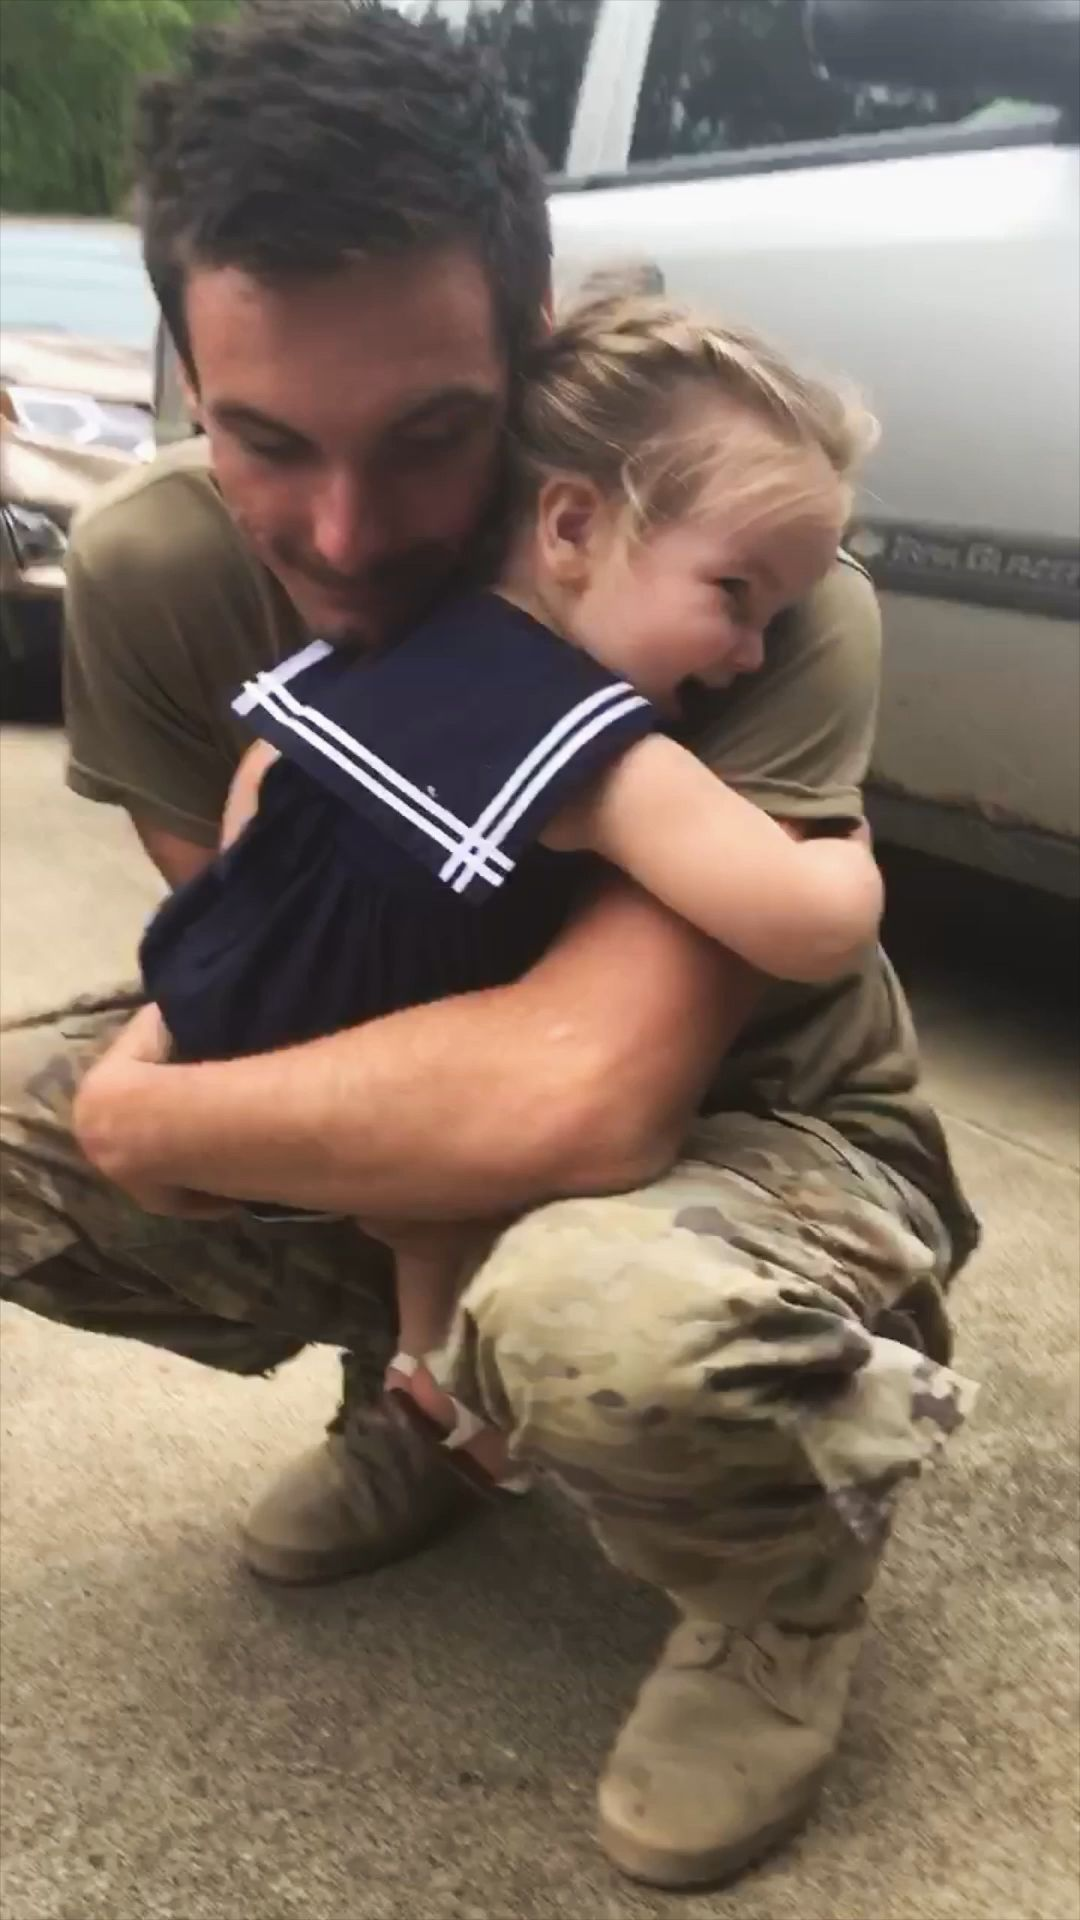 #militaryhomecoming #militaryfamily #daddydaughter #fatherdaughter #familyphotography #familygoals #youngfamily #armyfamily #militarylife #militarykids